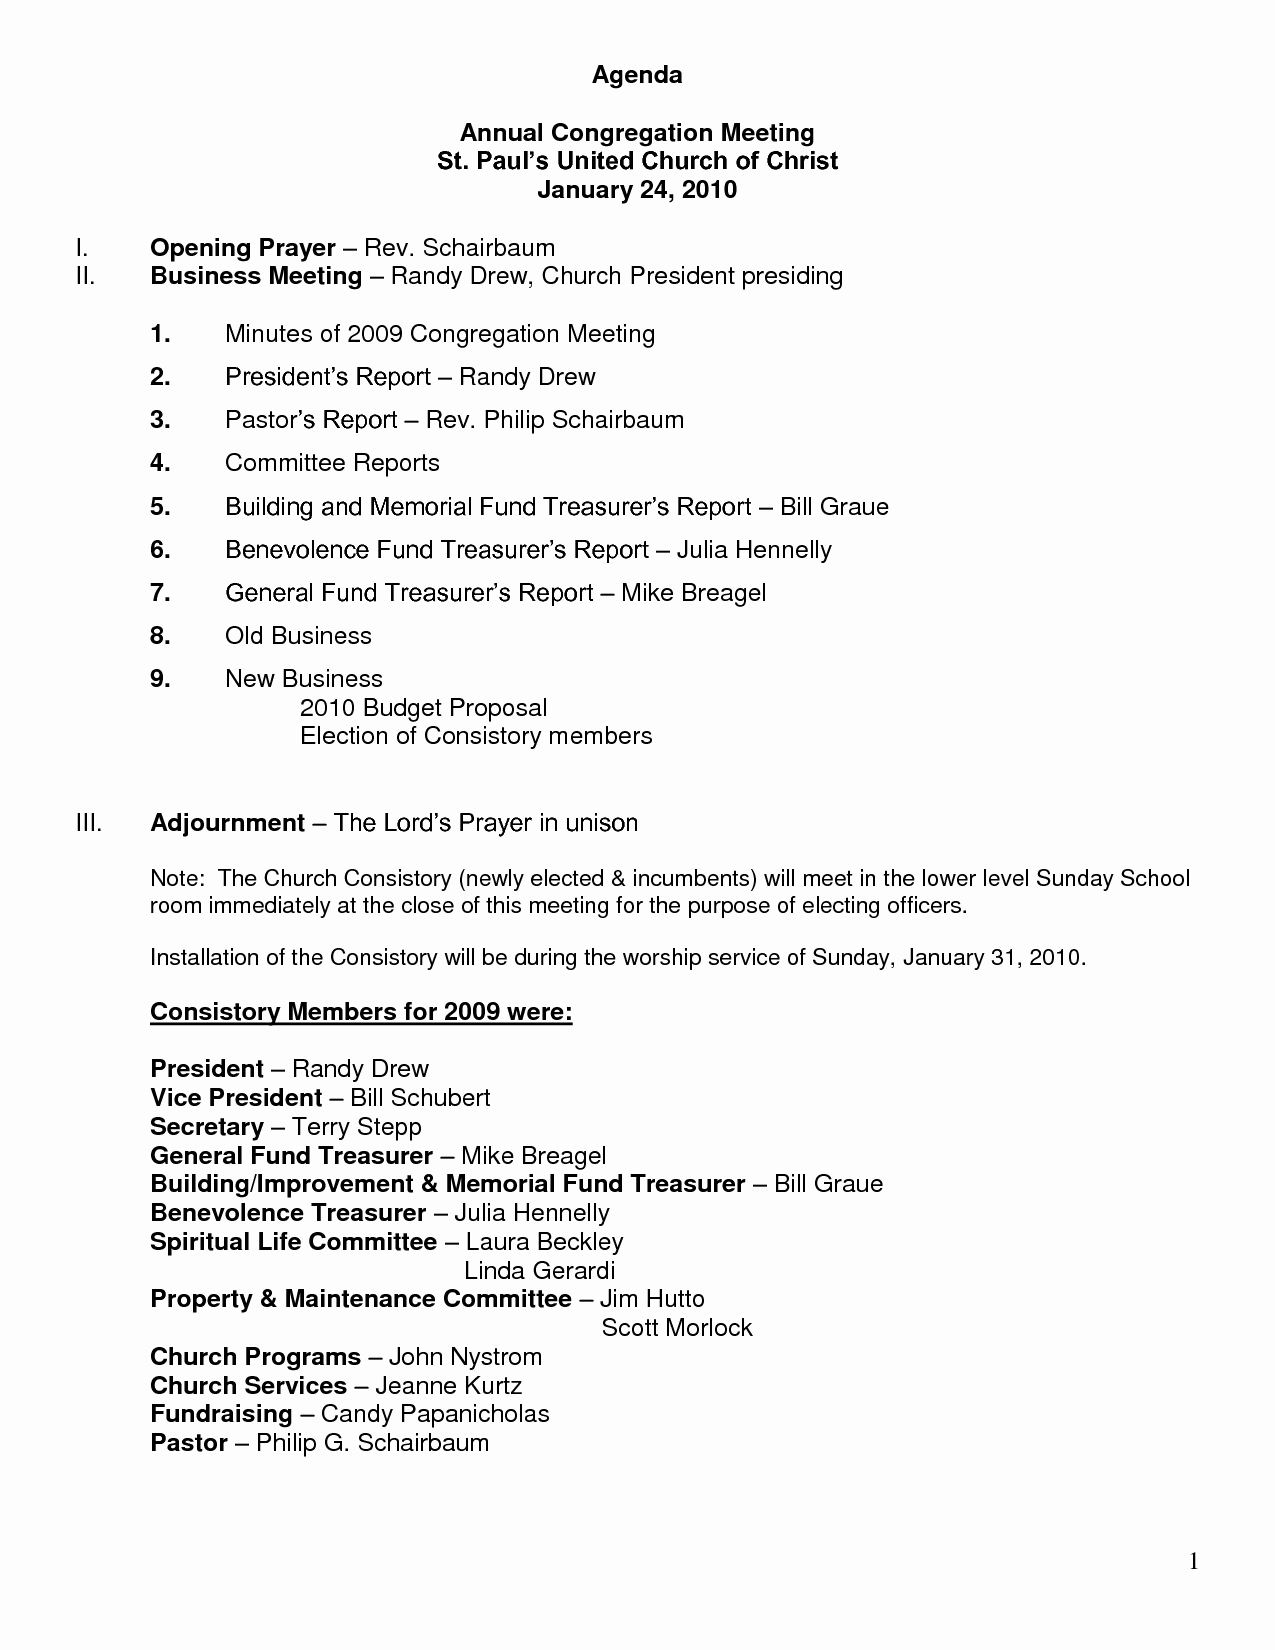 Agenda Sample for Business Meeting Inspirational 10 Best Of Church Business Meeting Minutes Sample